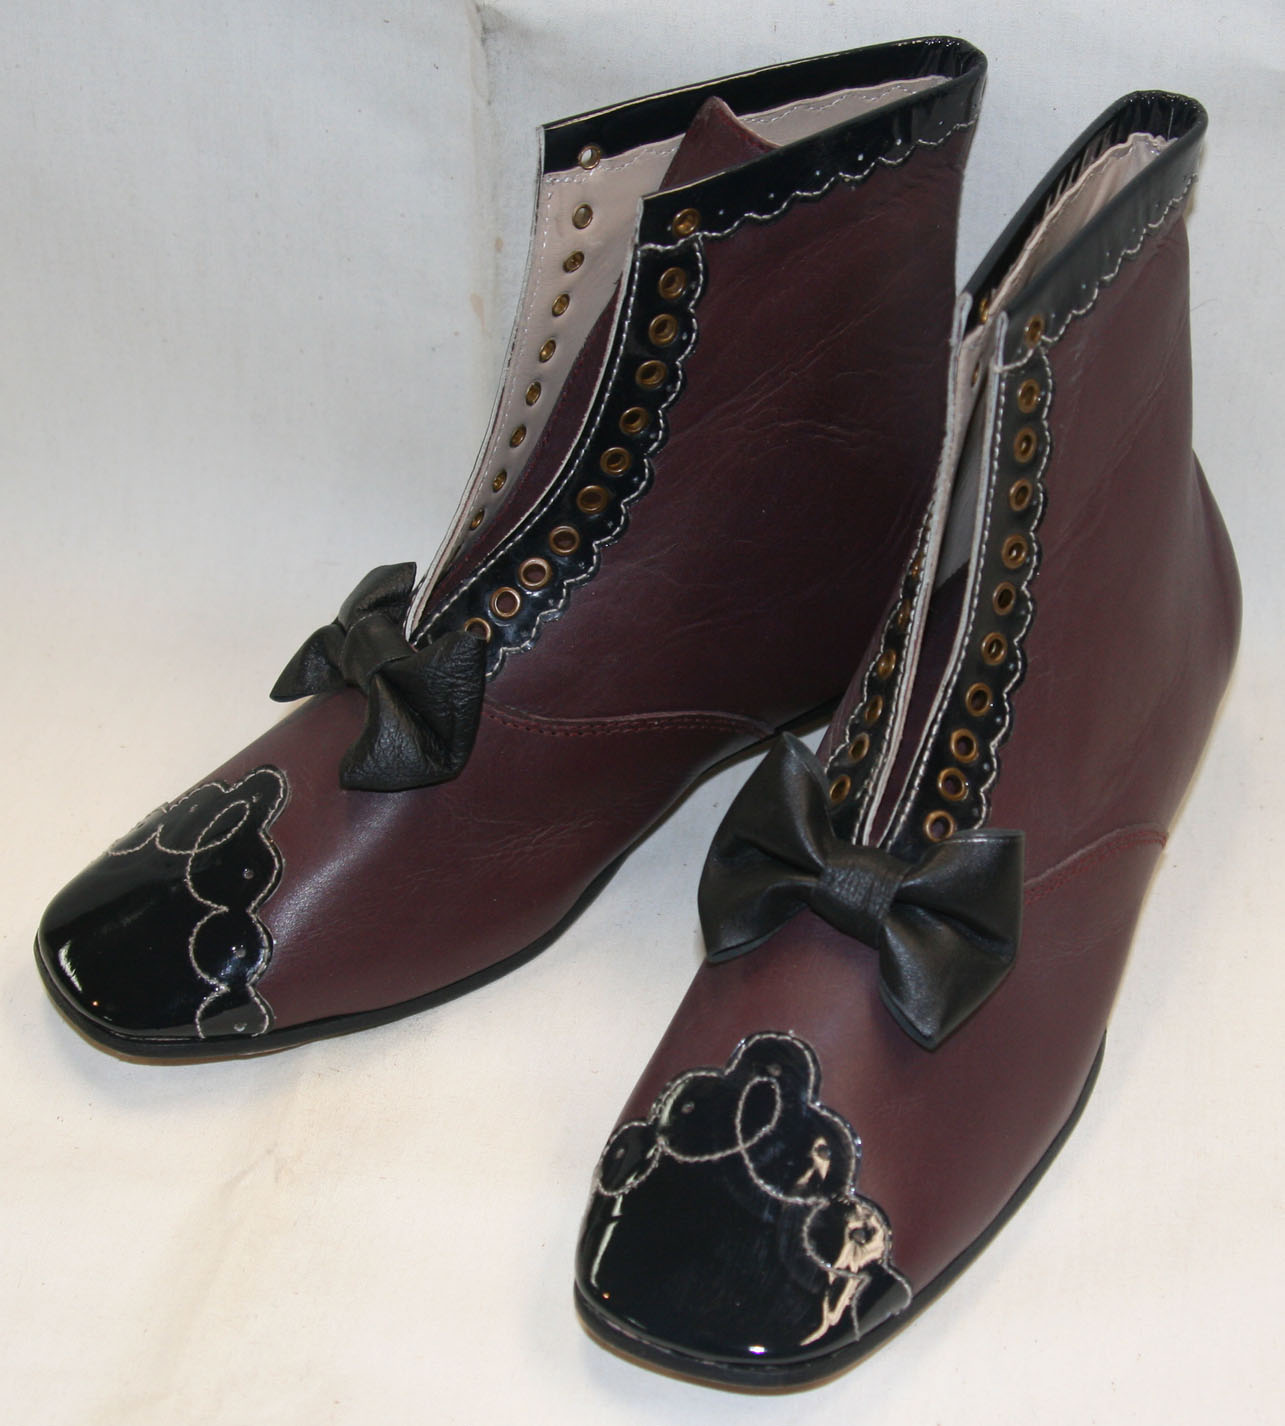 Maroon ladies decorative balmoral style shoe size 12